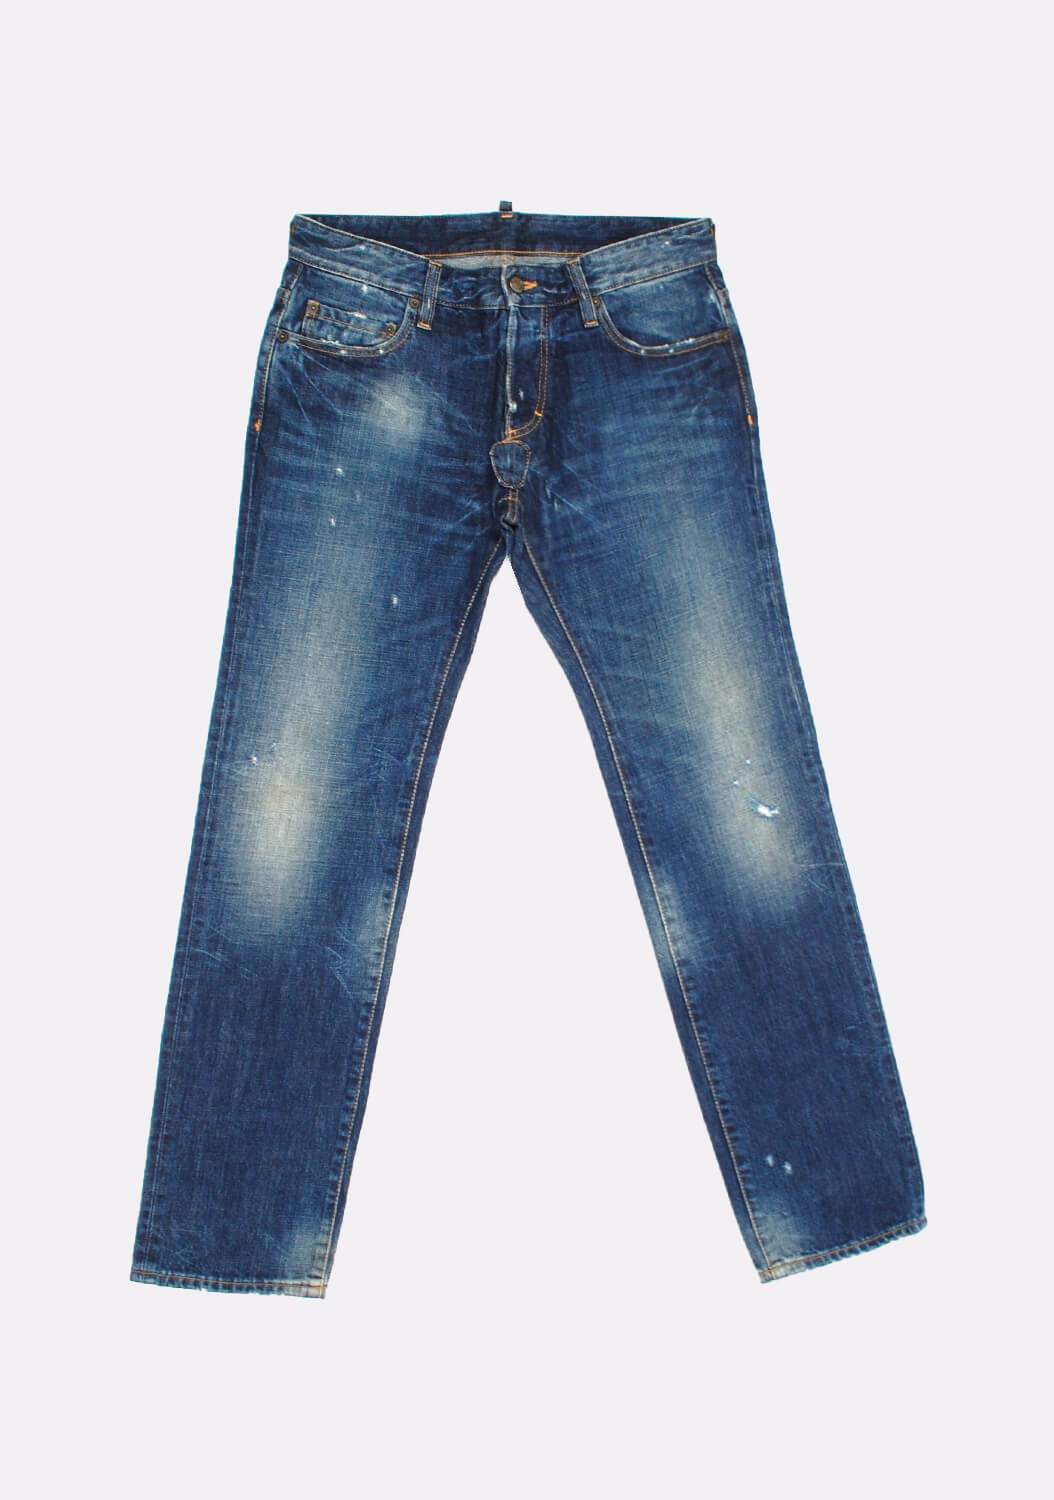 dsquared-dzinsai-46-slim-fit-melyni-1.jpg.jpg